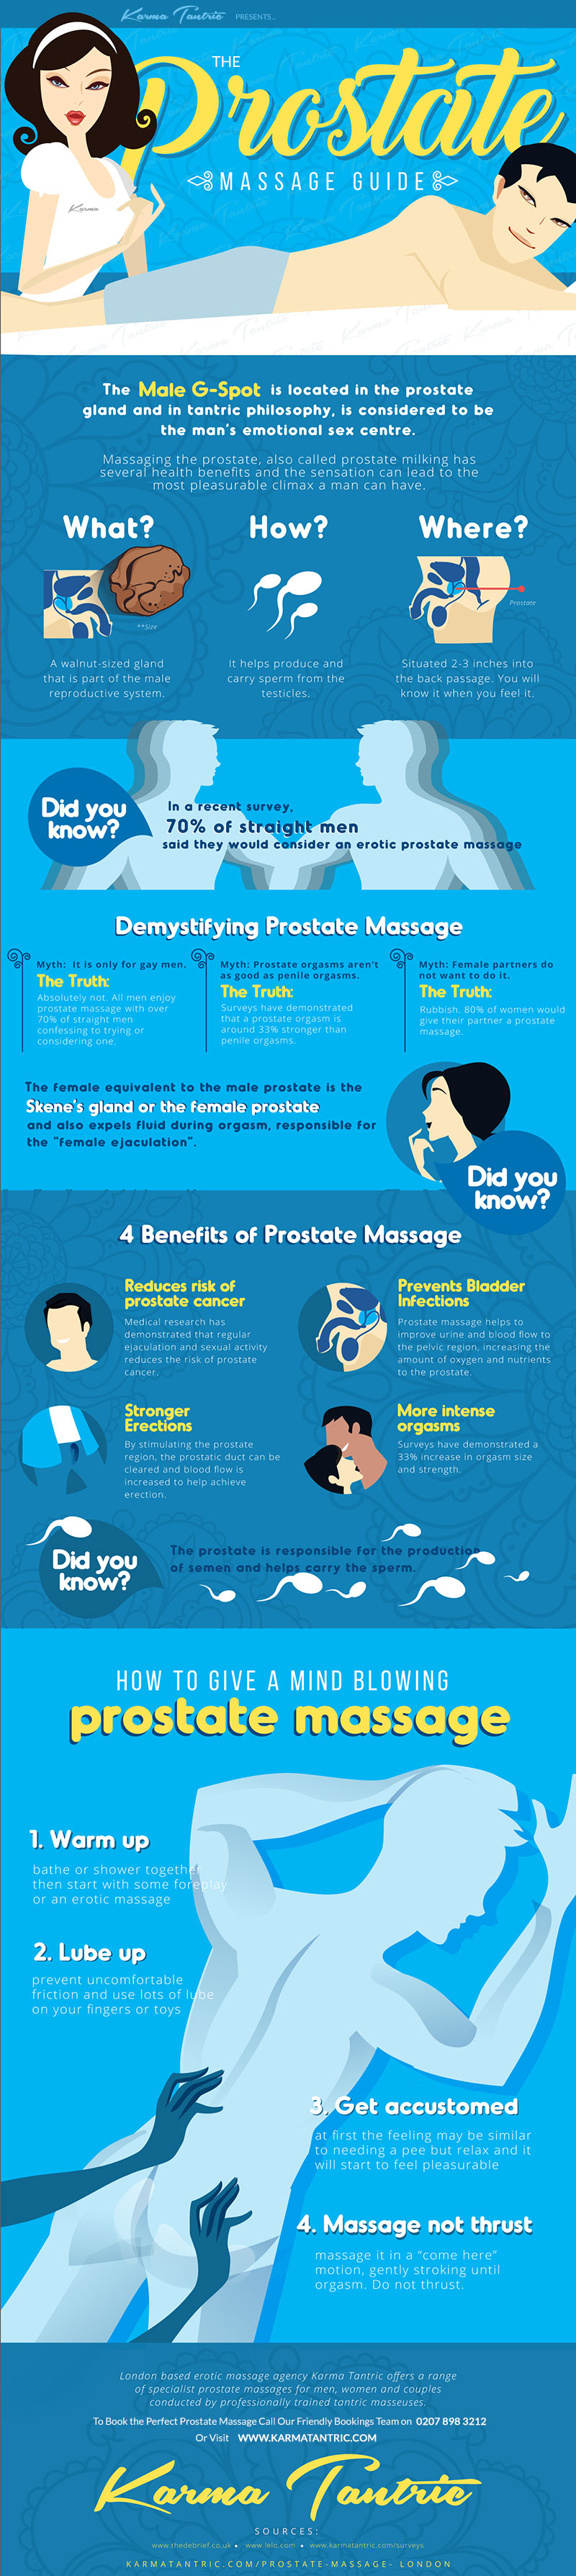 The Ultimate Prostate Massage Guide